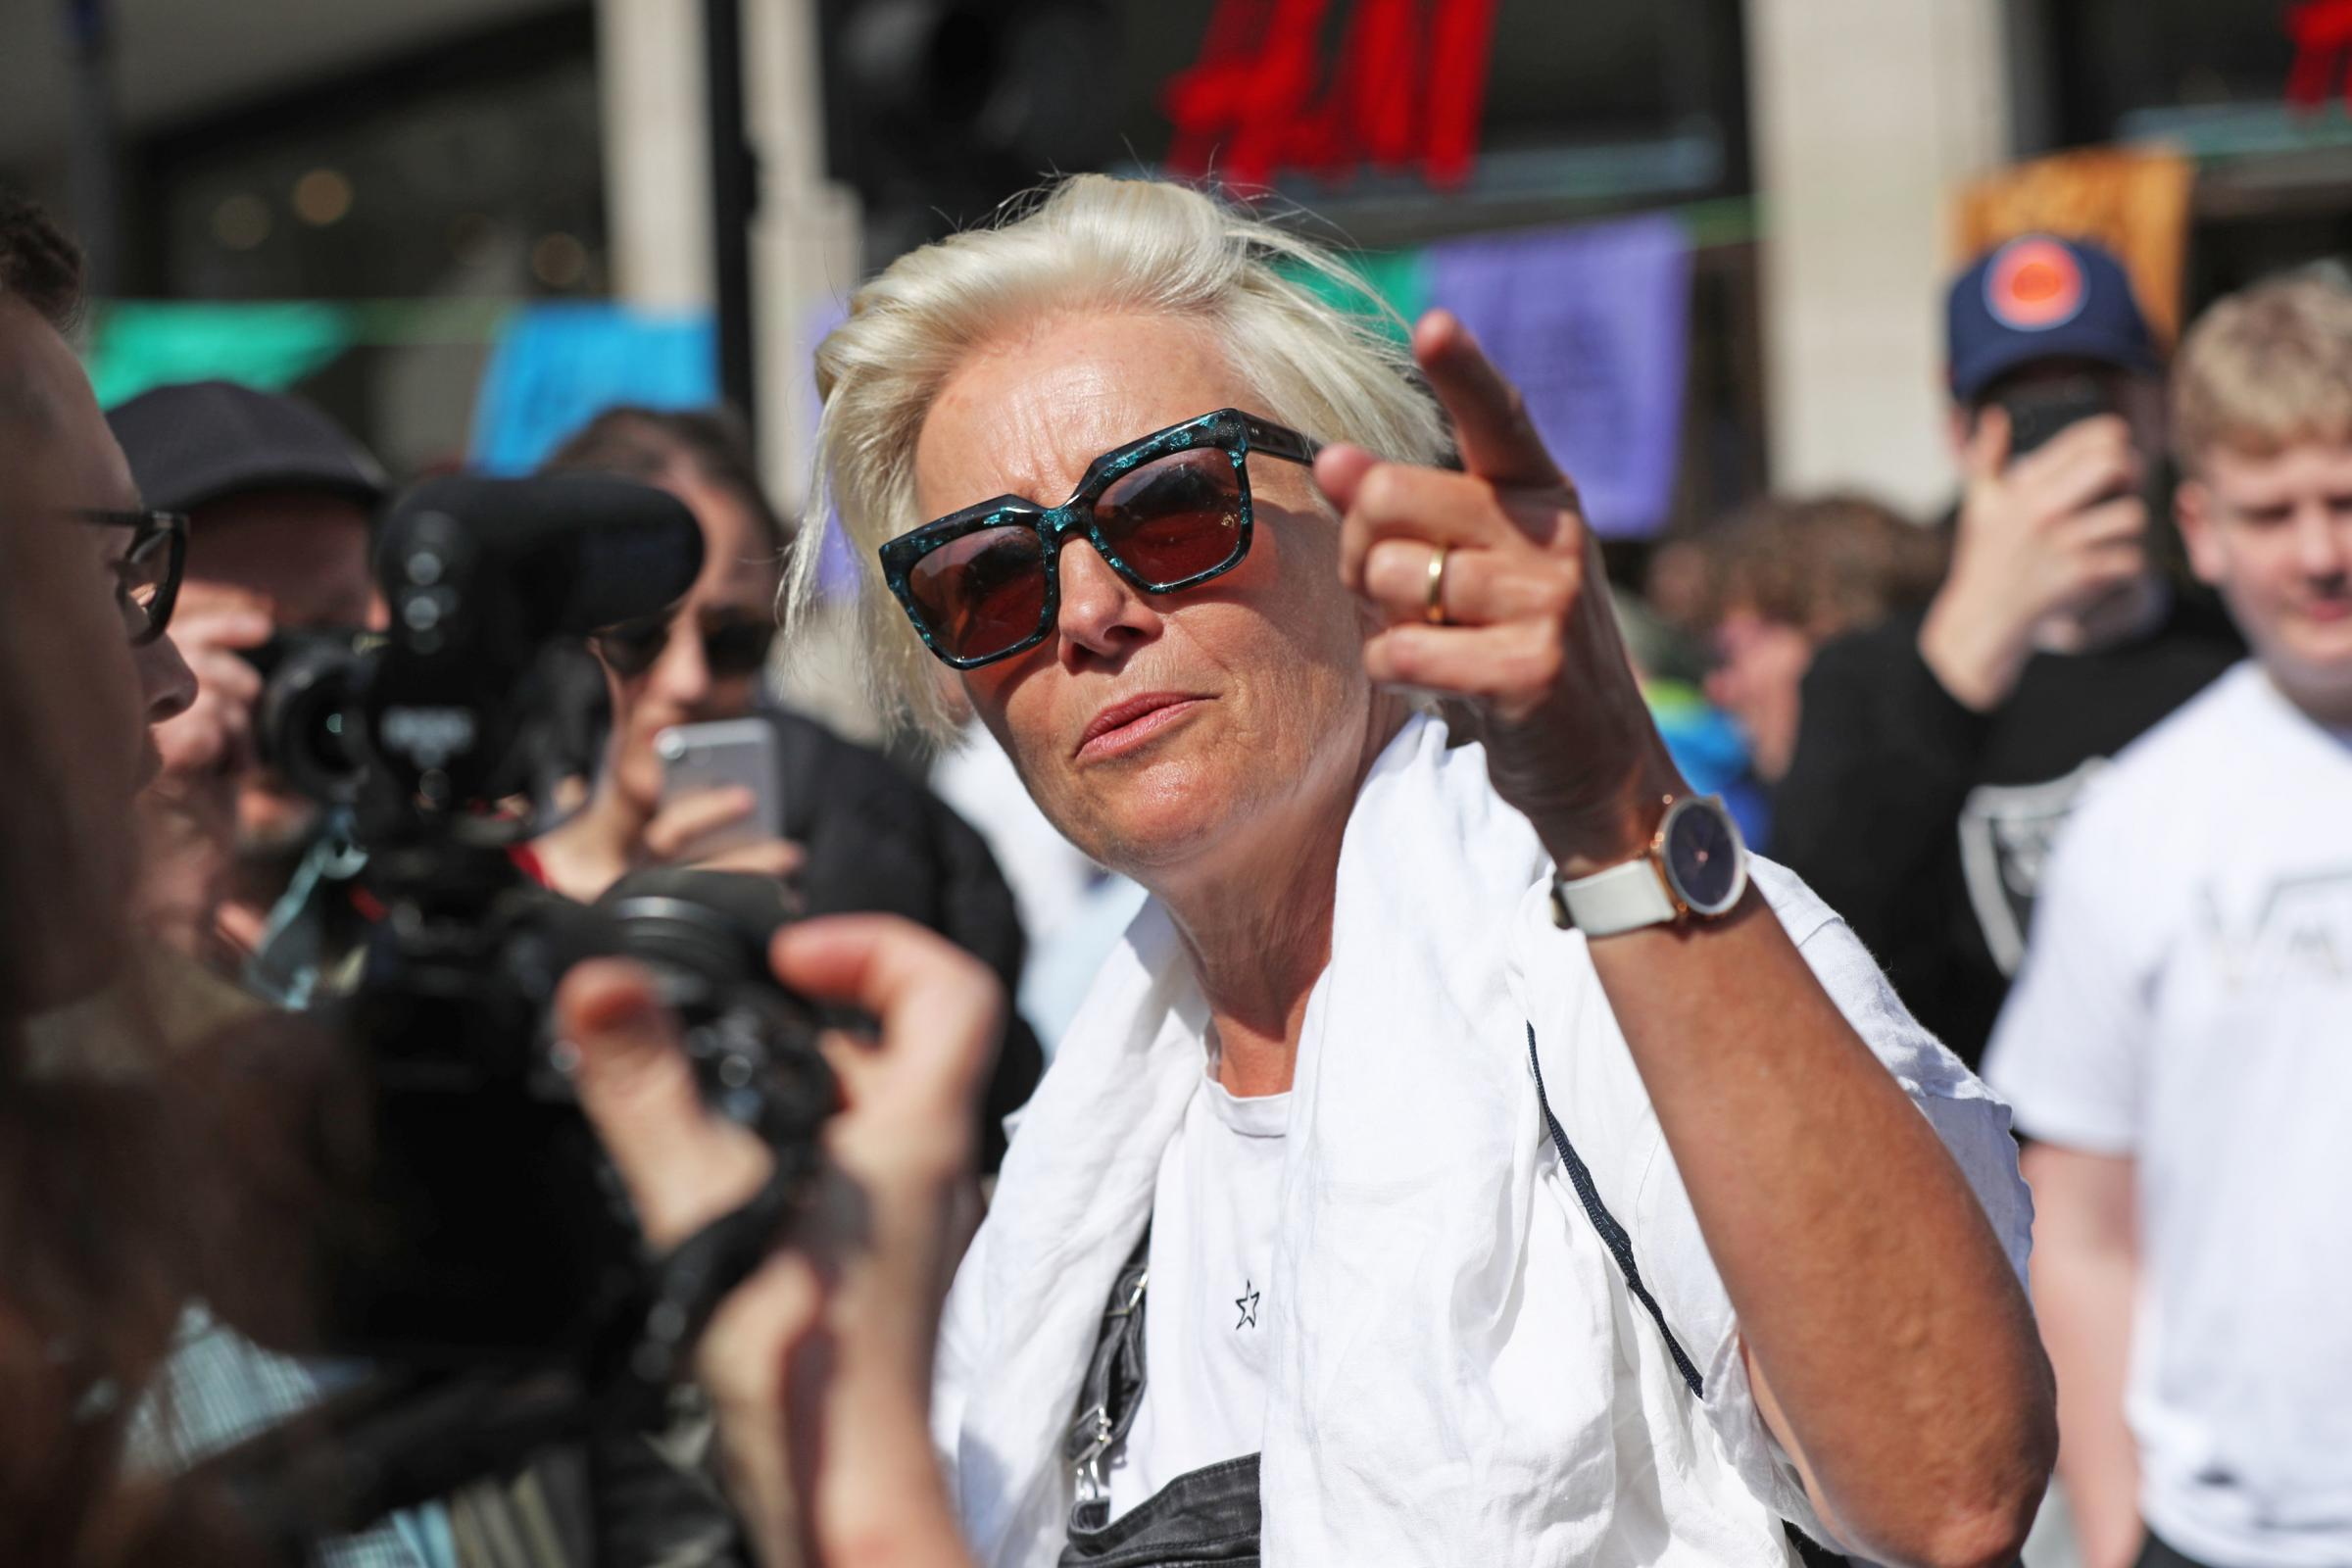 Dame Emma Thompson flies 5,400 miles to join London climate change protests